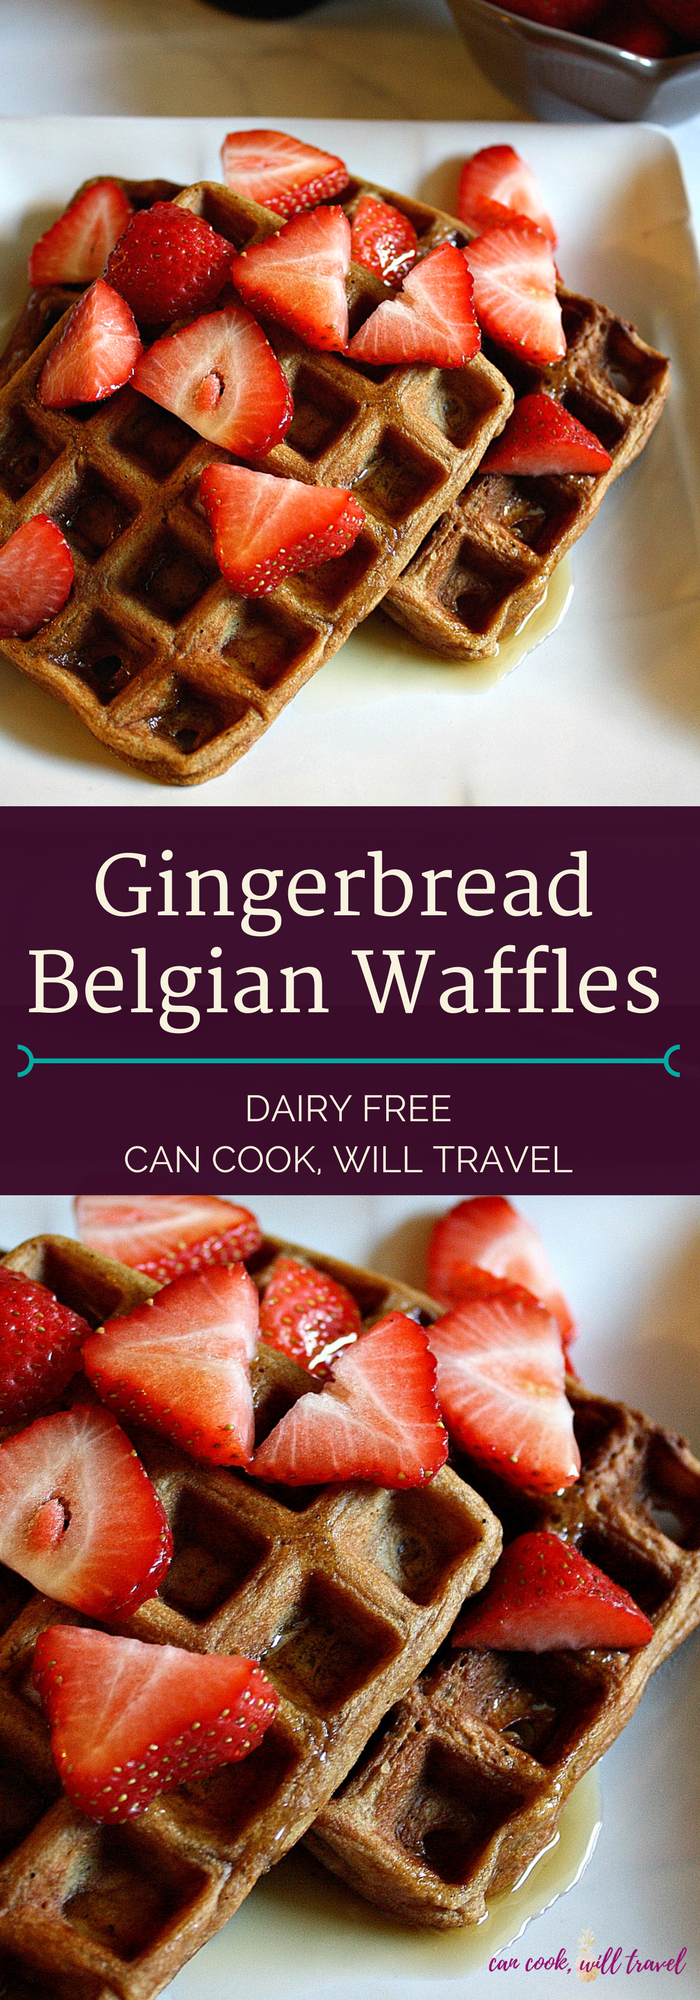 Gingerbread Belgian Waffles_Collage1